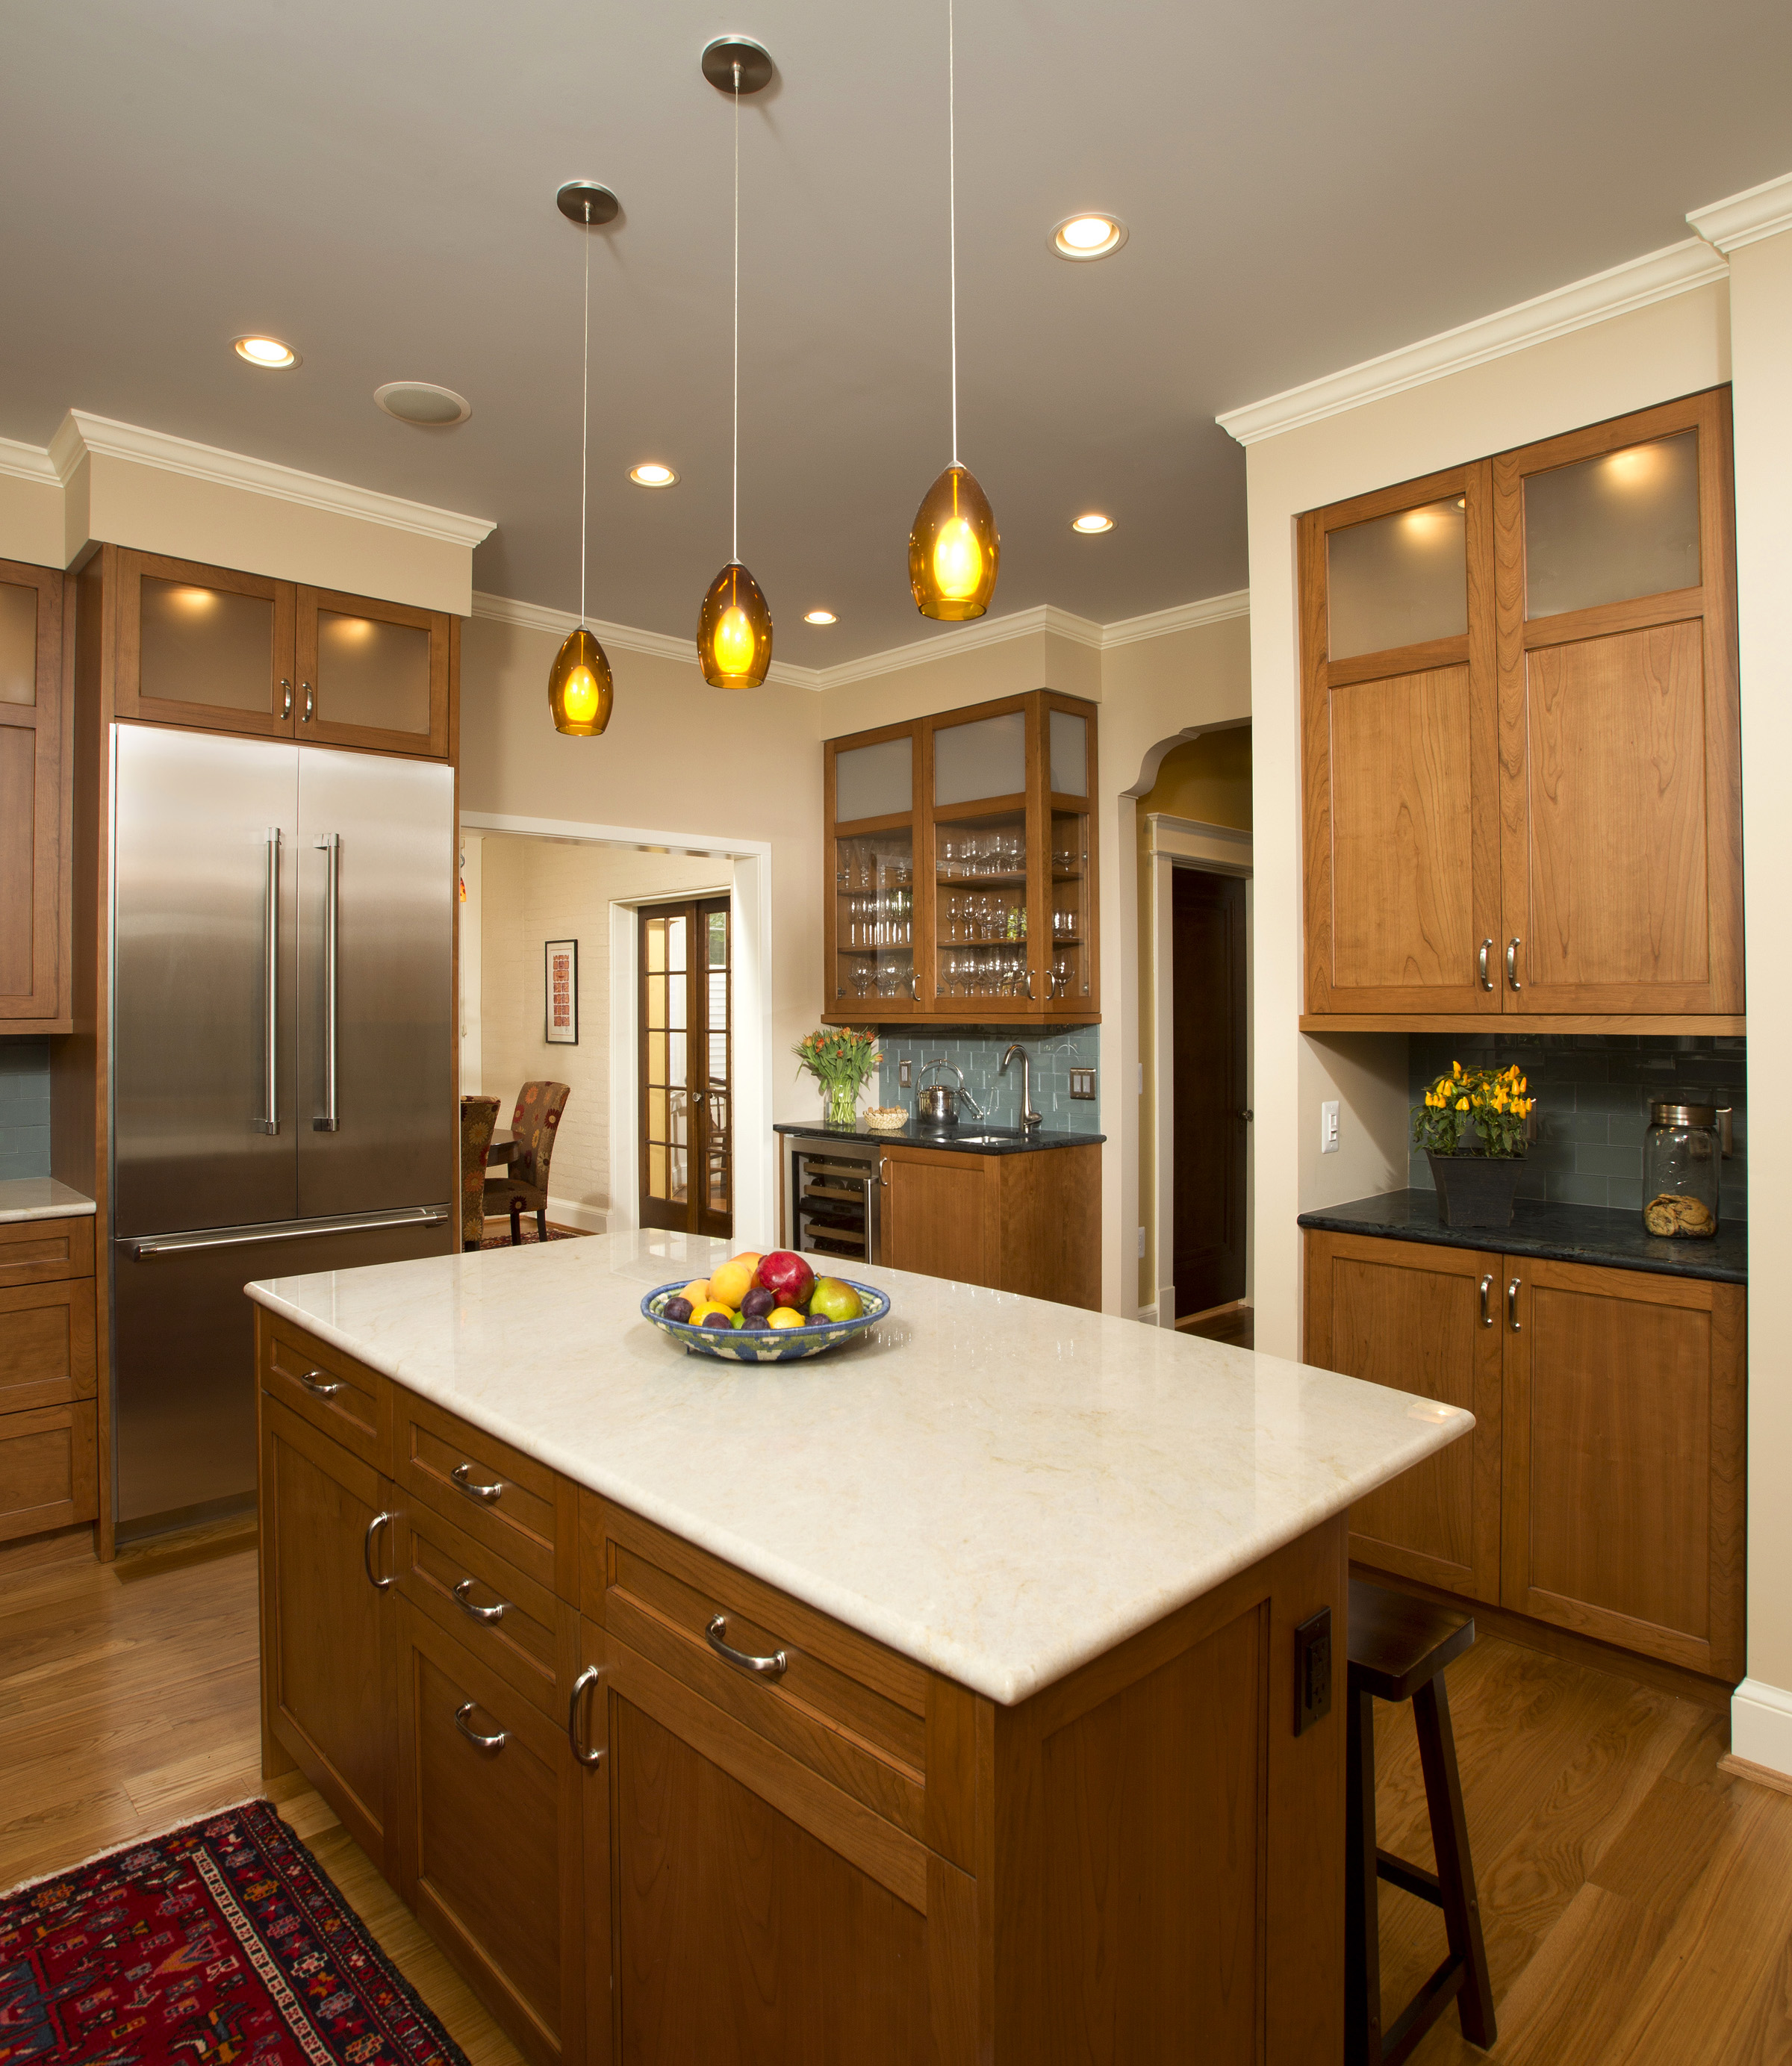 Mixing Stones in Kitchen